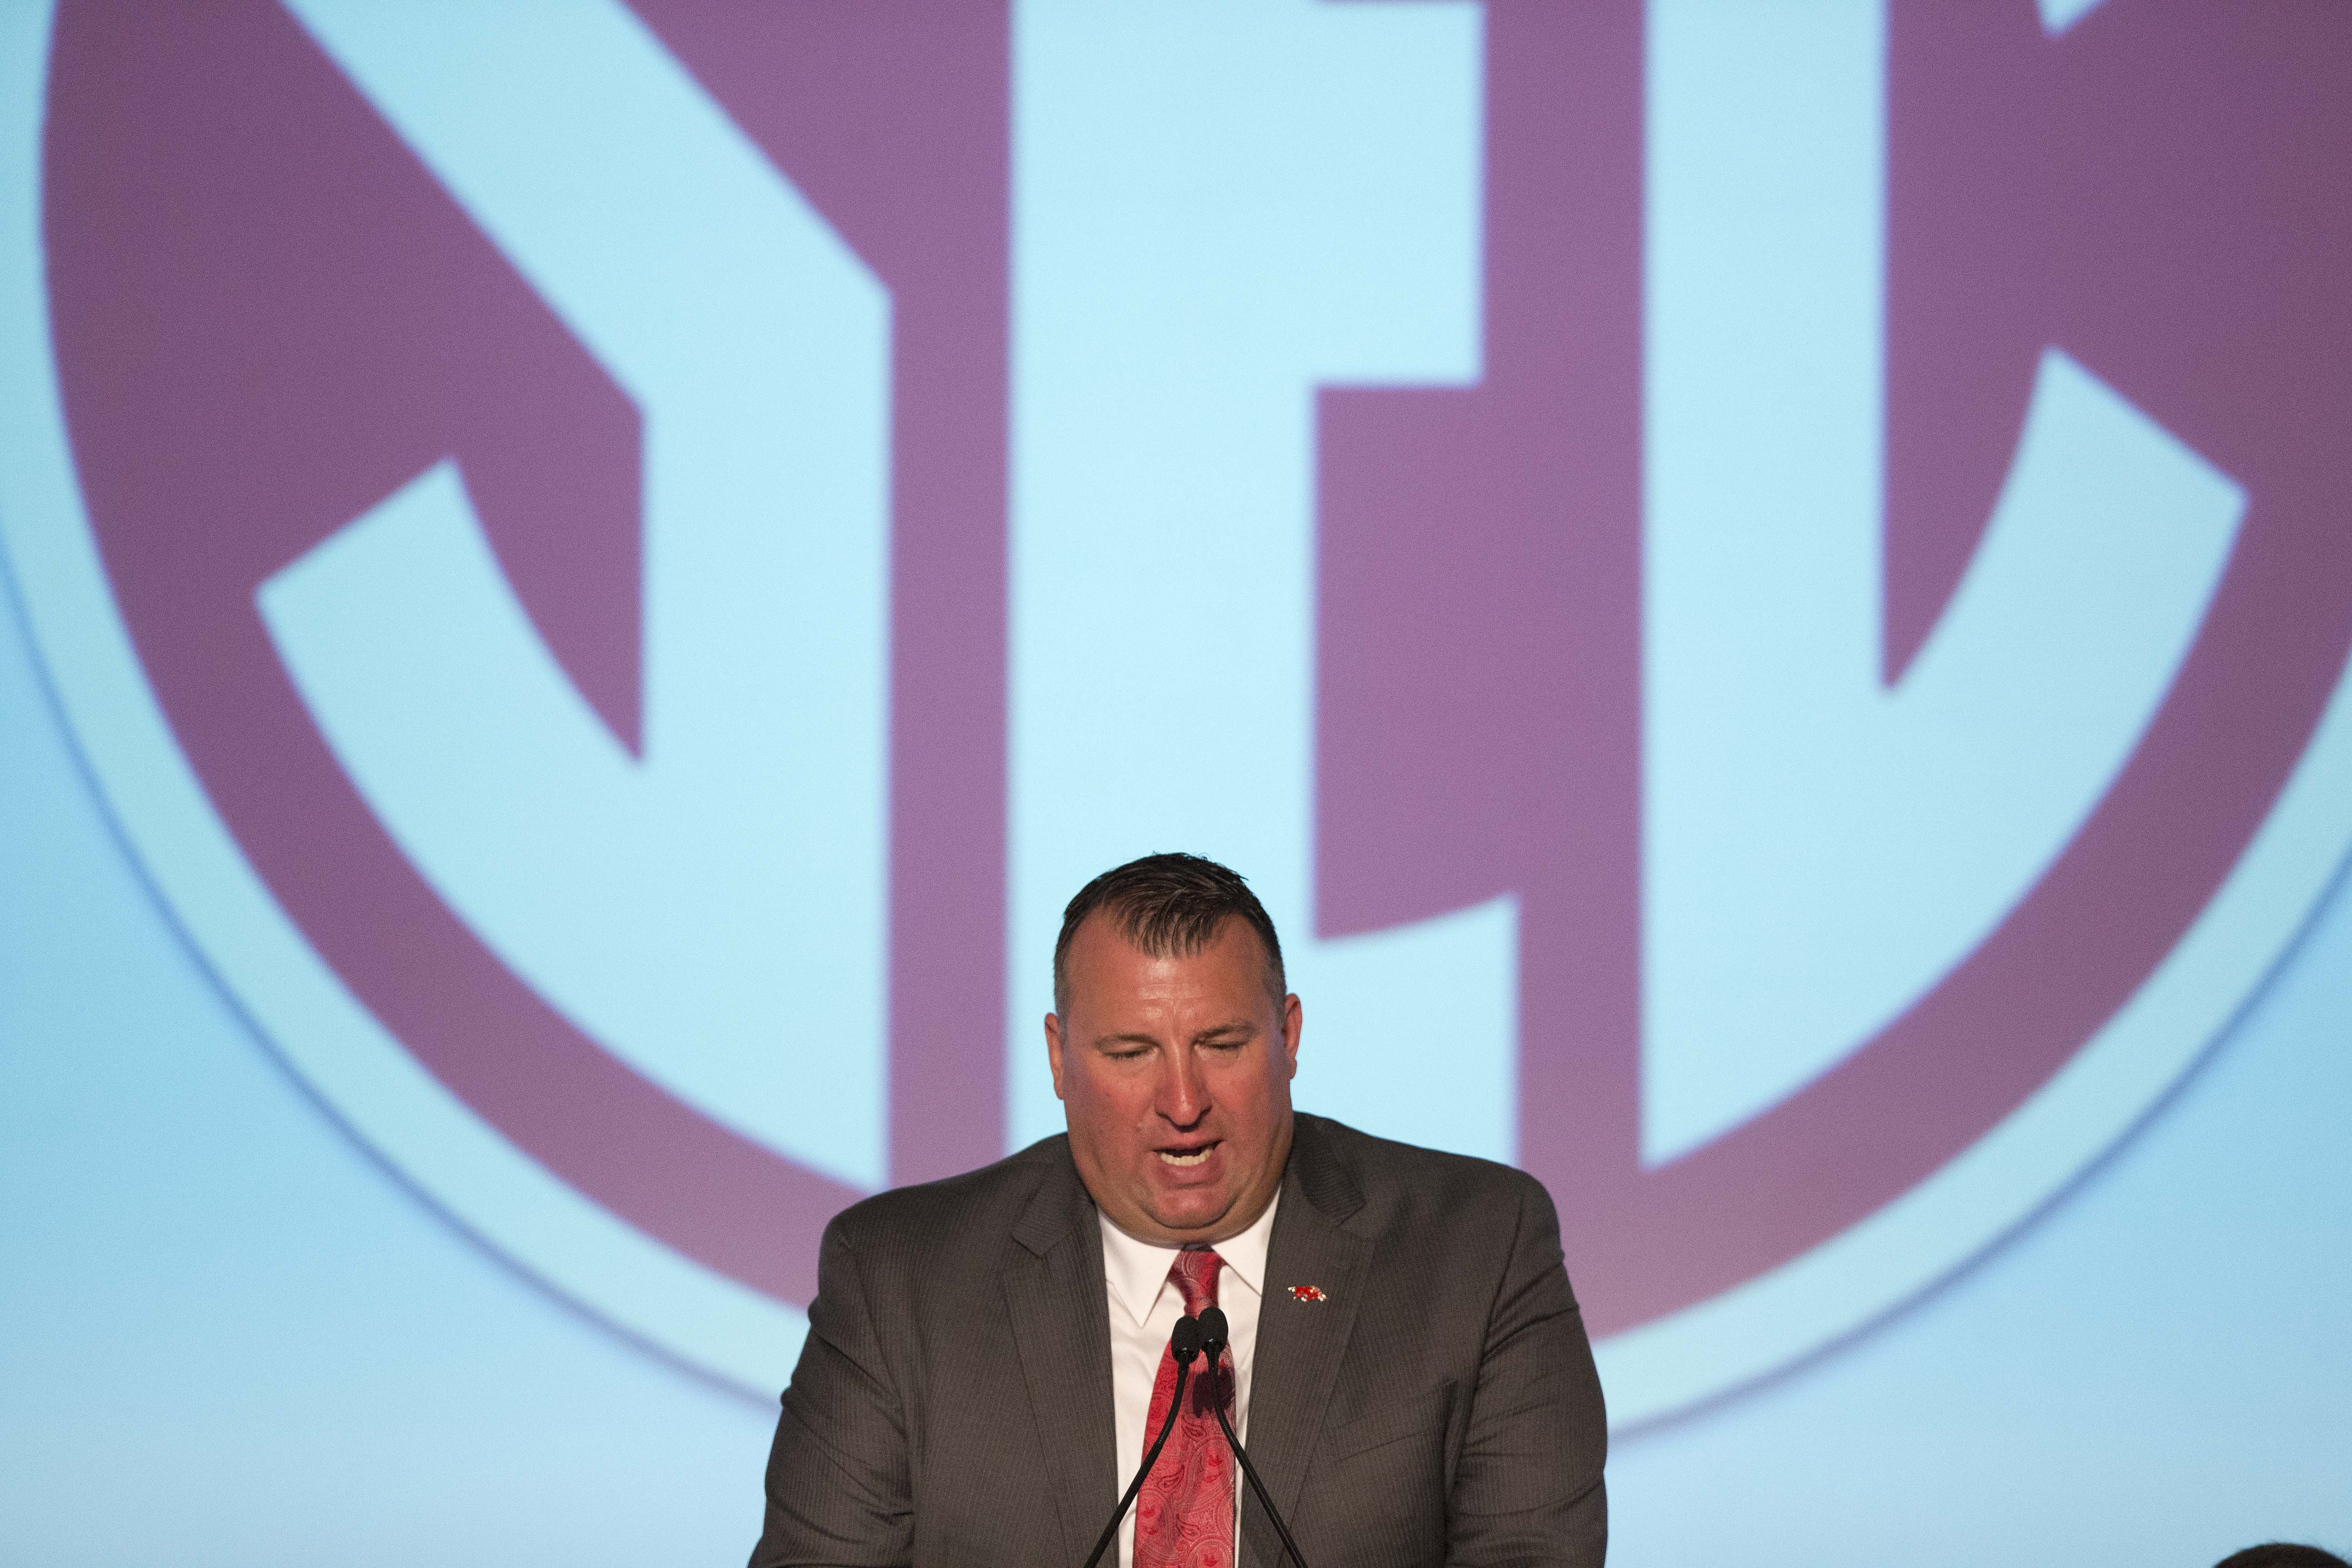 Arkansas coach Bret Bielema speaks to the media at the Southeastern Conference NCAA college football media days, Wednesday, July 15, 2015, in Hoover, Ala. (AP Photo/Brynn Anderson)